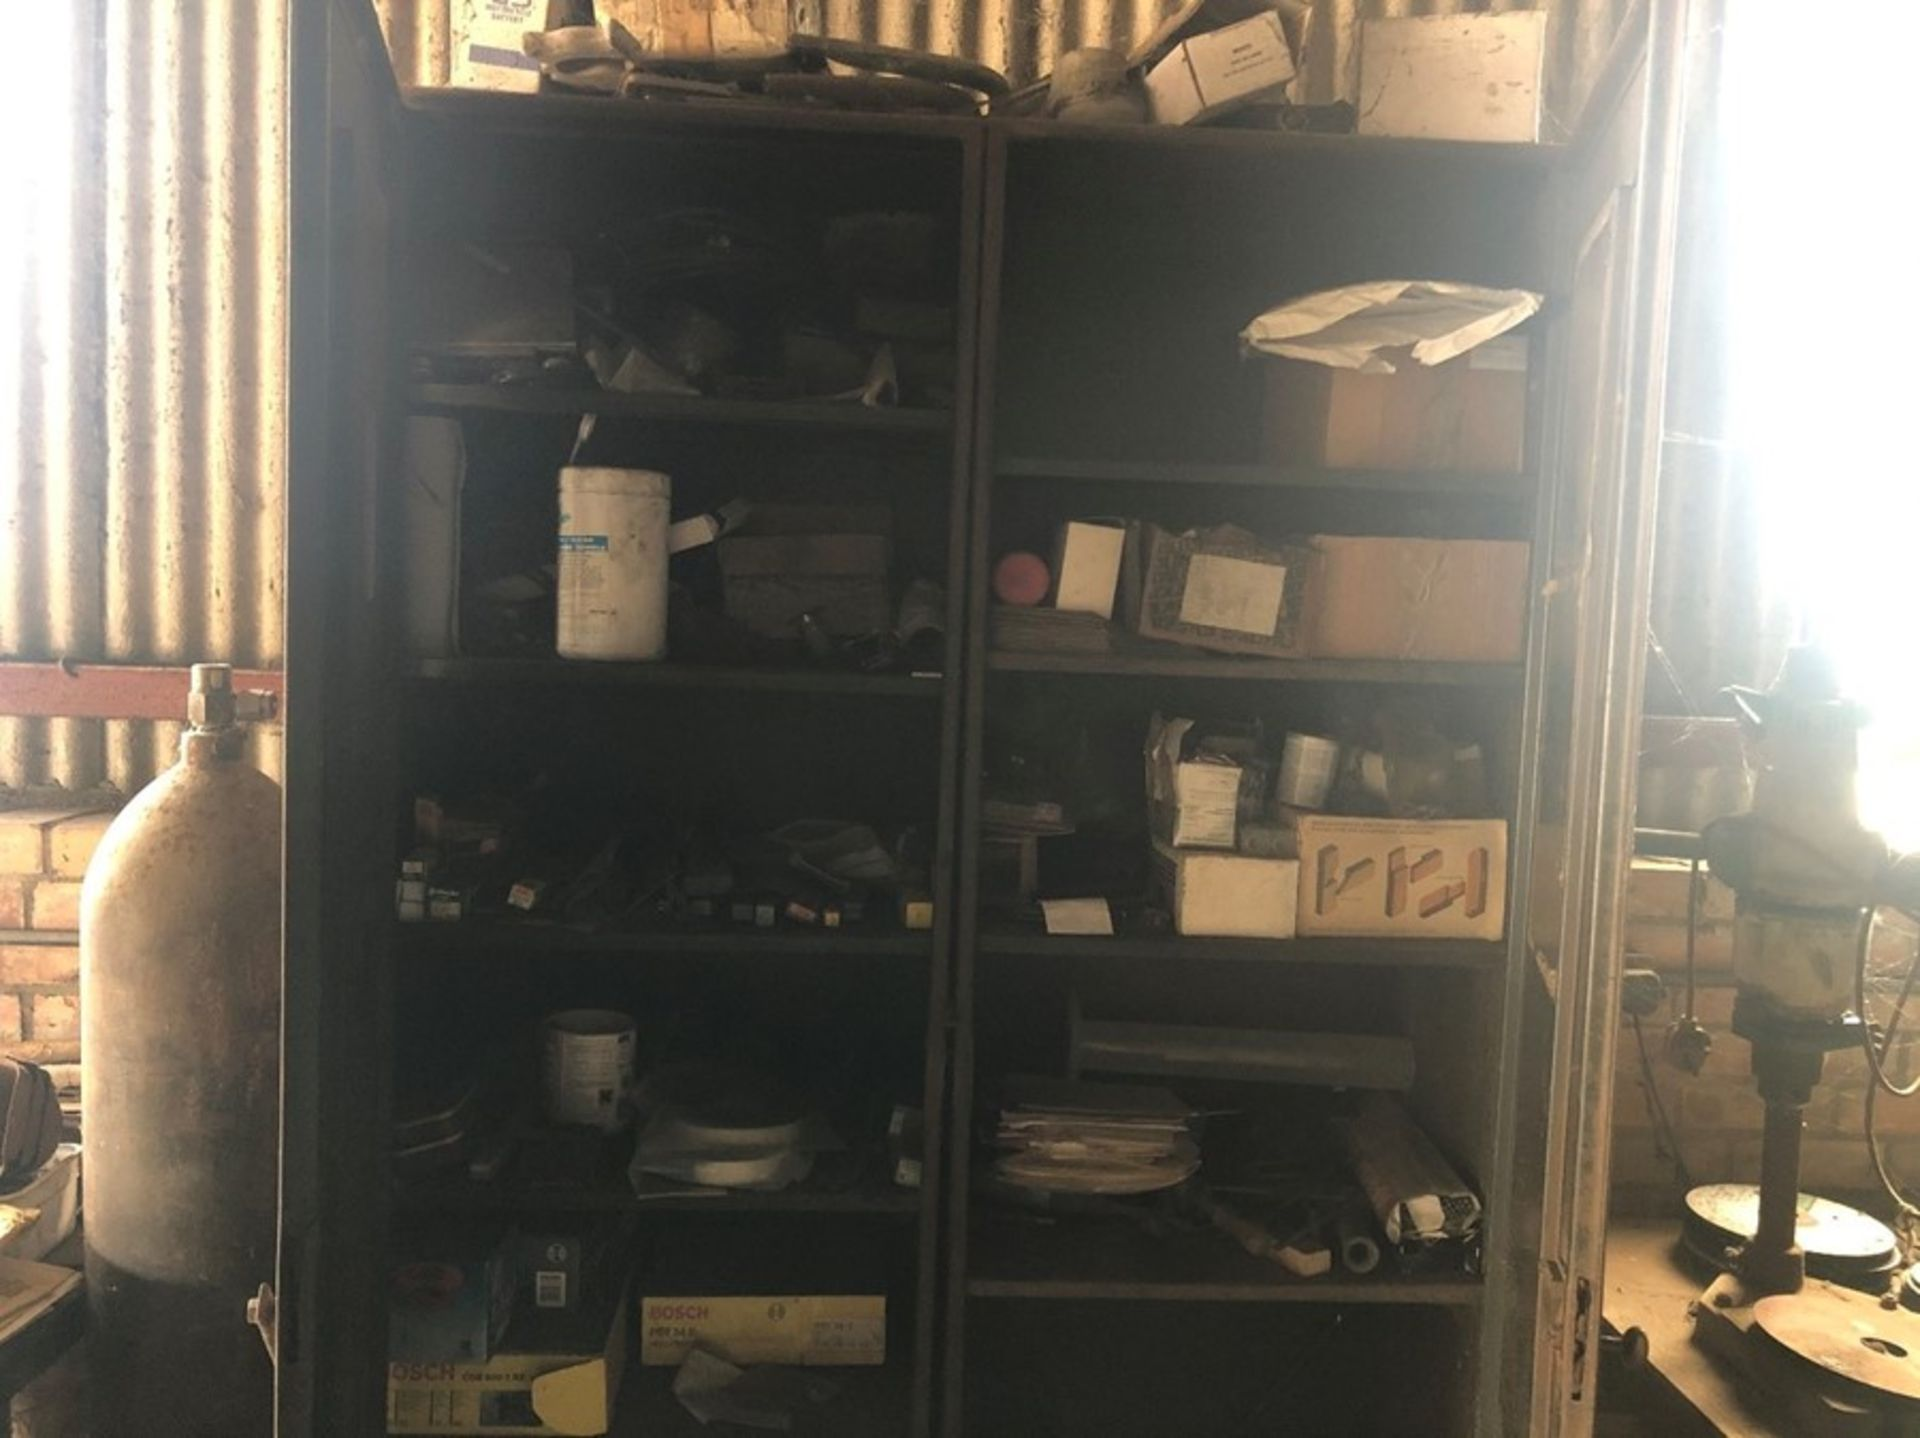 Metal workshop cabinets and contents of drill bits and spares - Passed PAT test